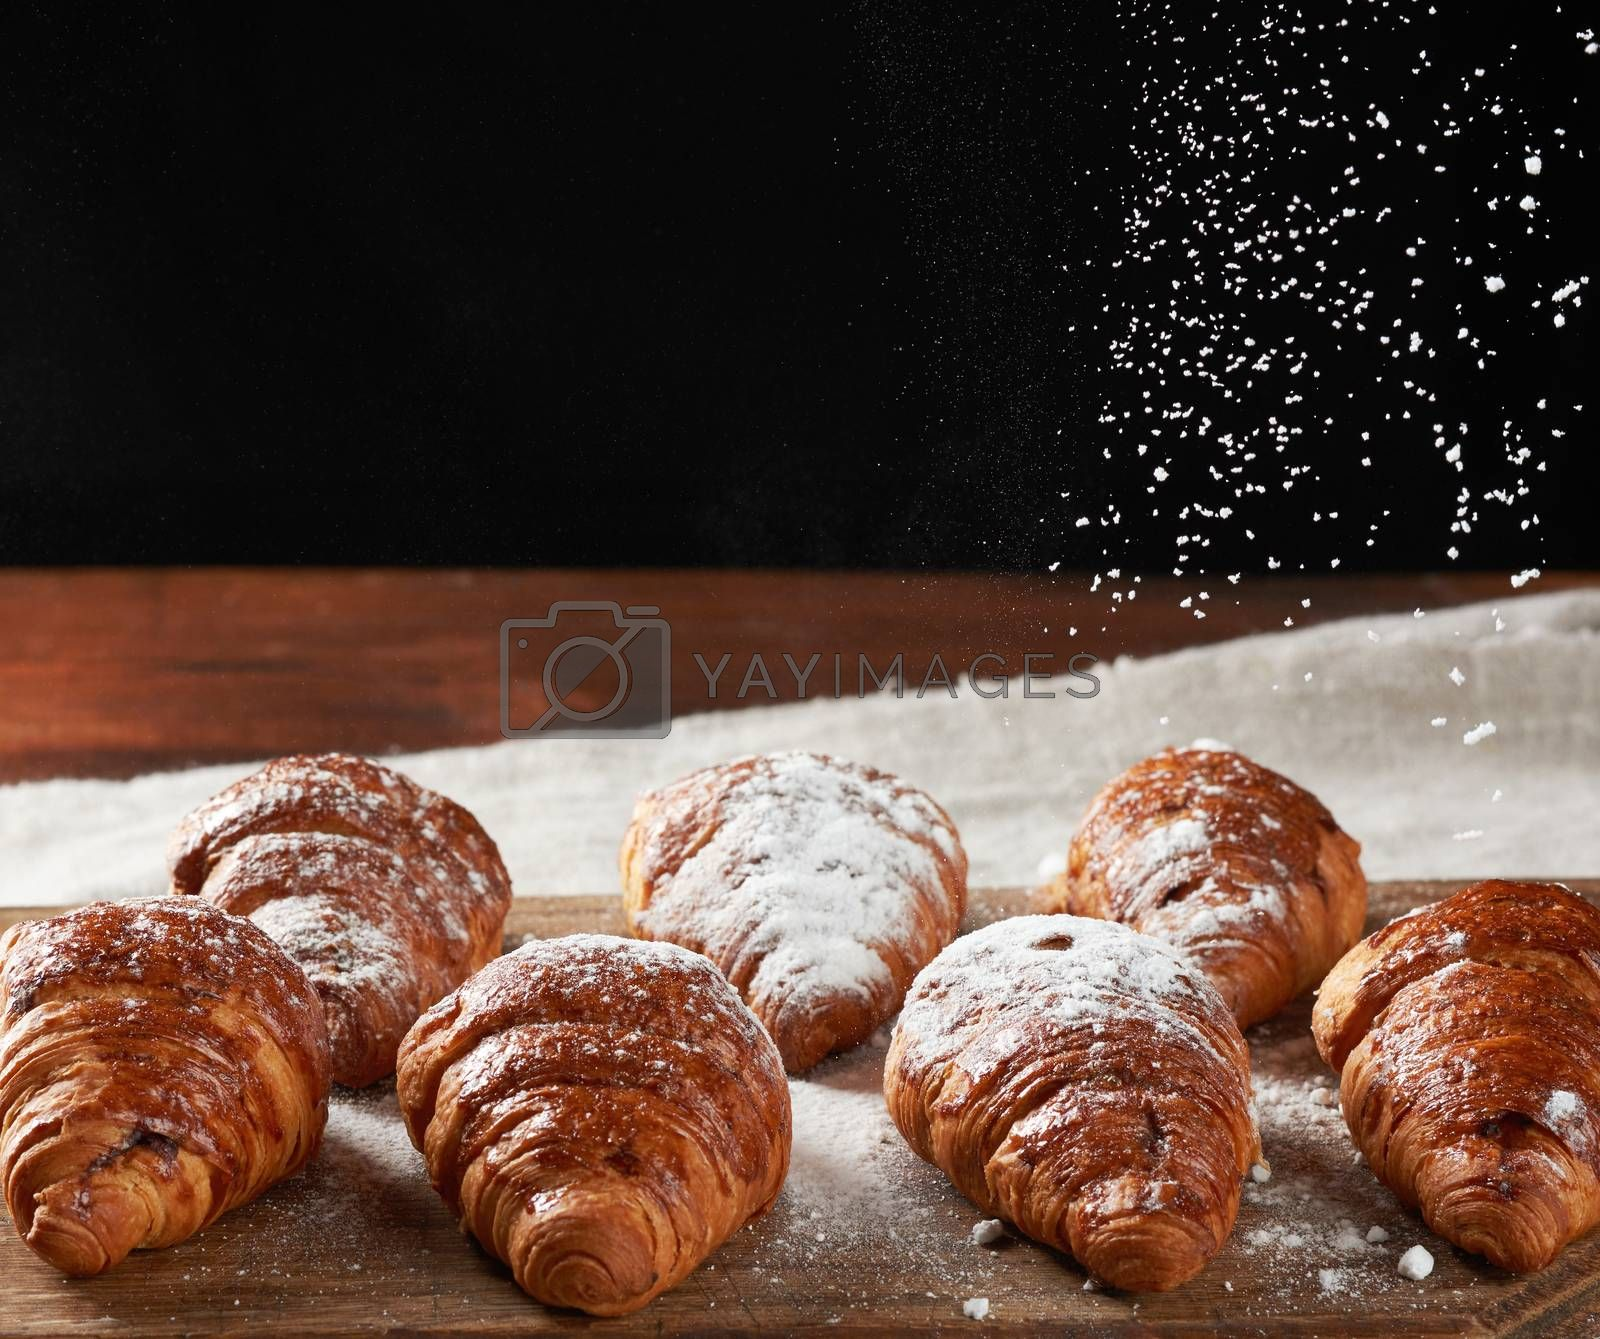 baked croissants sprinkled with powdered sugar on a wooden board, sugar flies from above